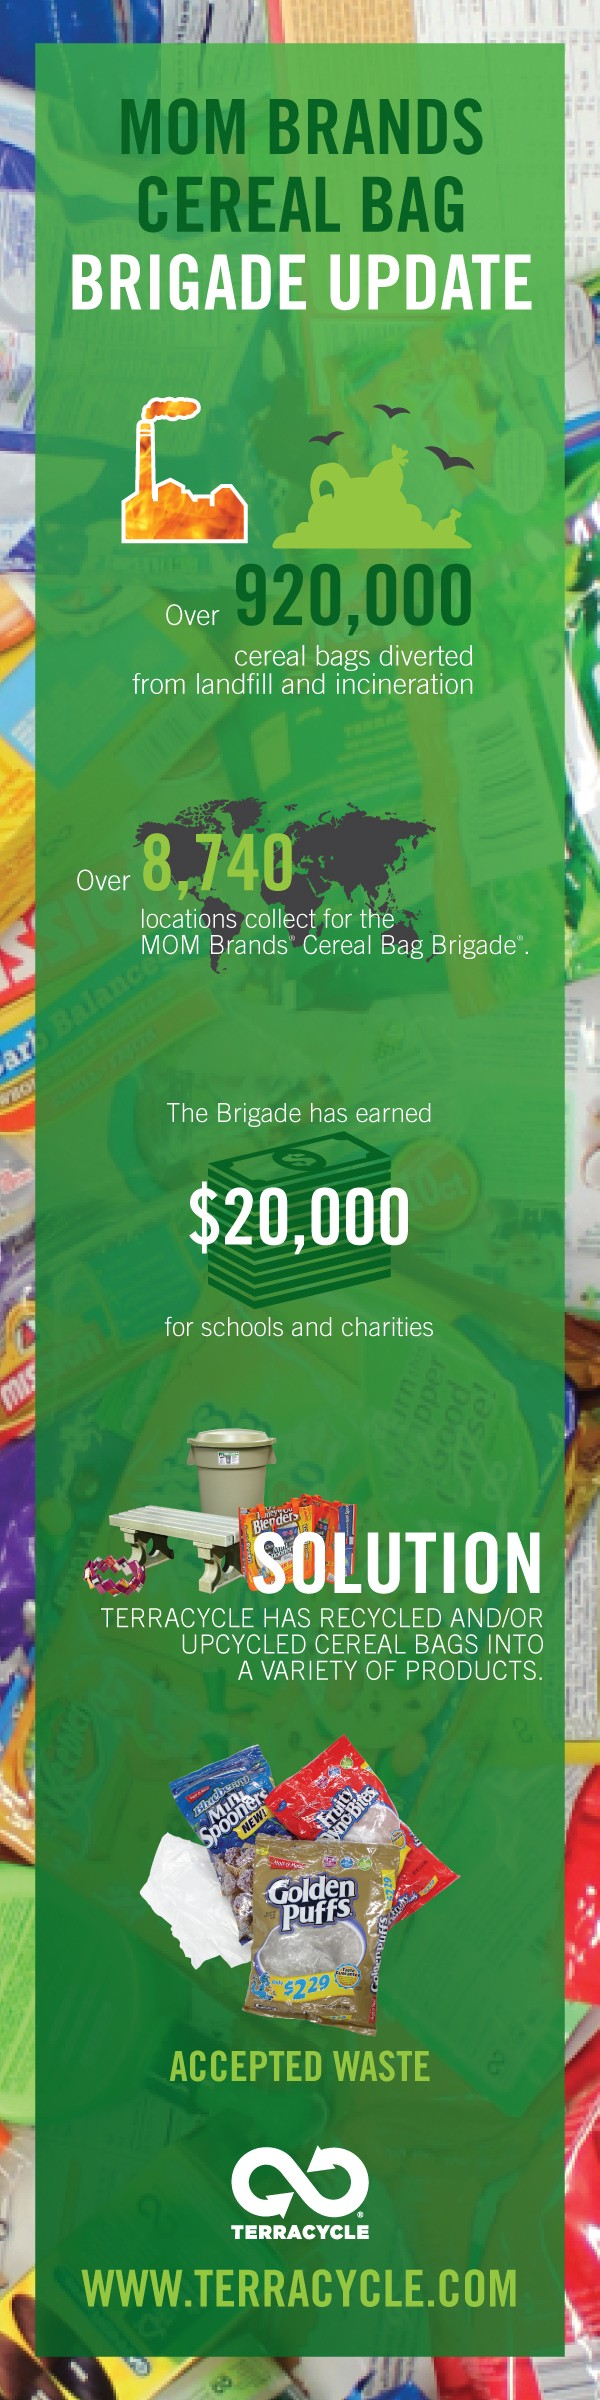 4 Facts you didn't know about the Malt-O-Meal Cereal Bag Brigade